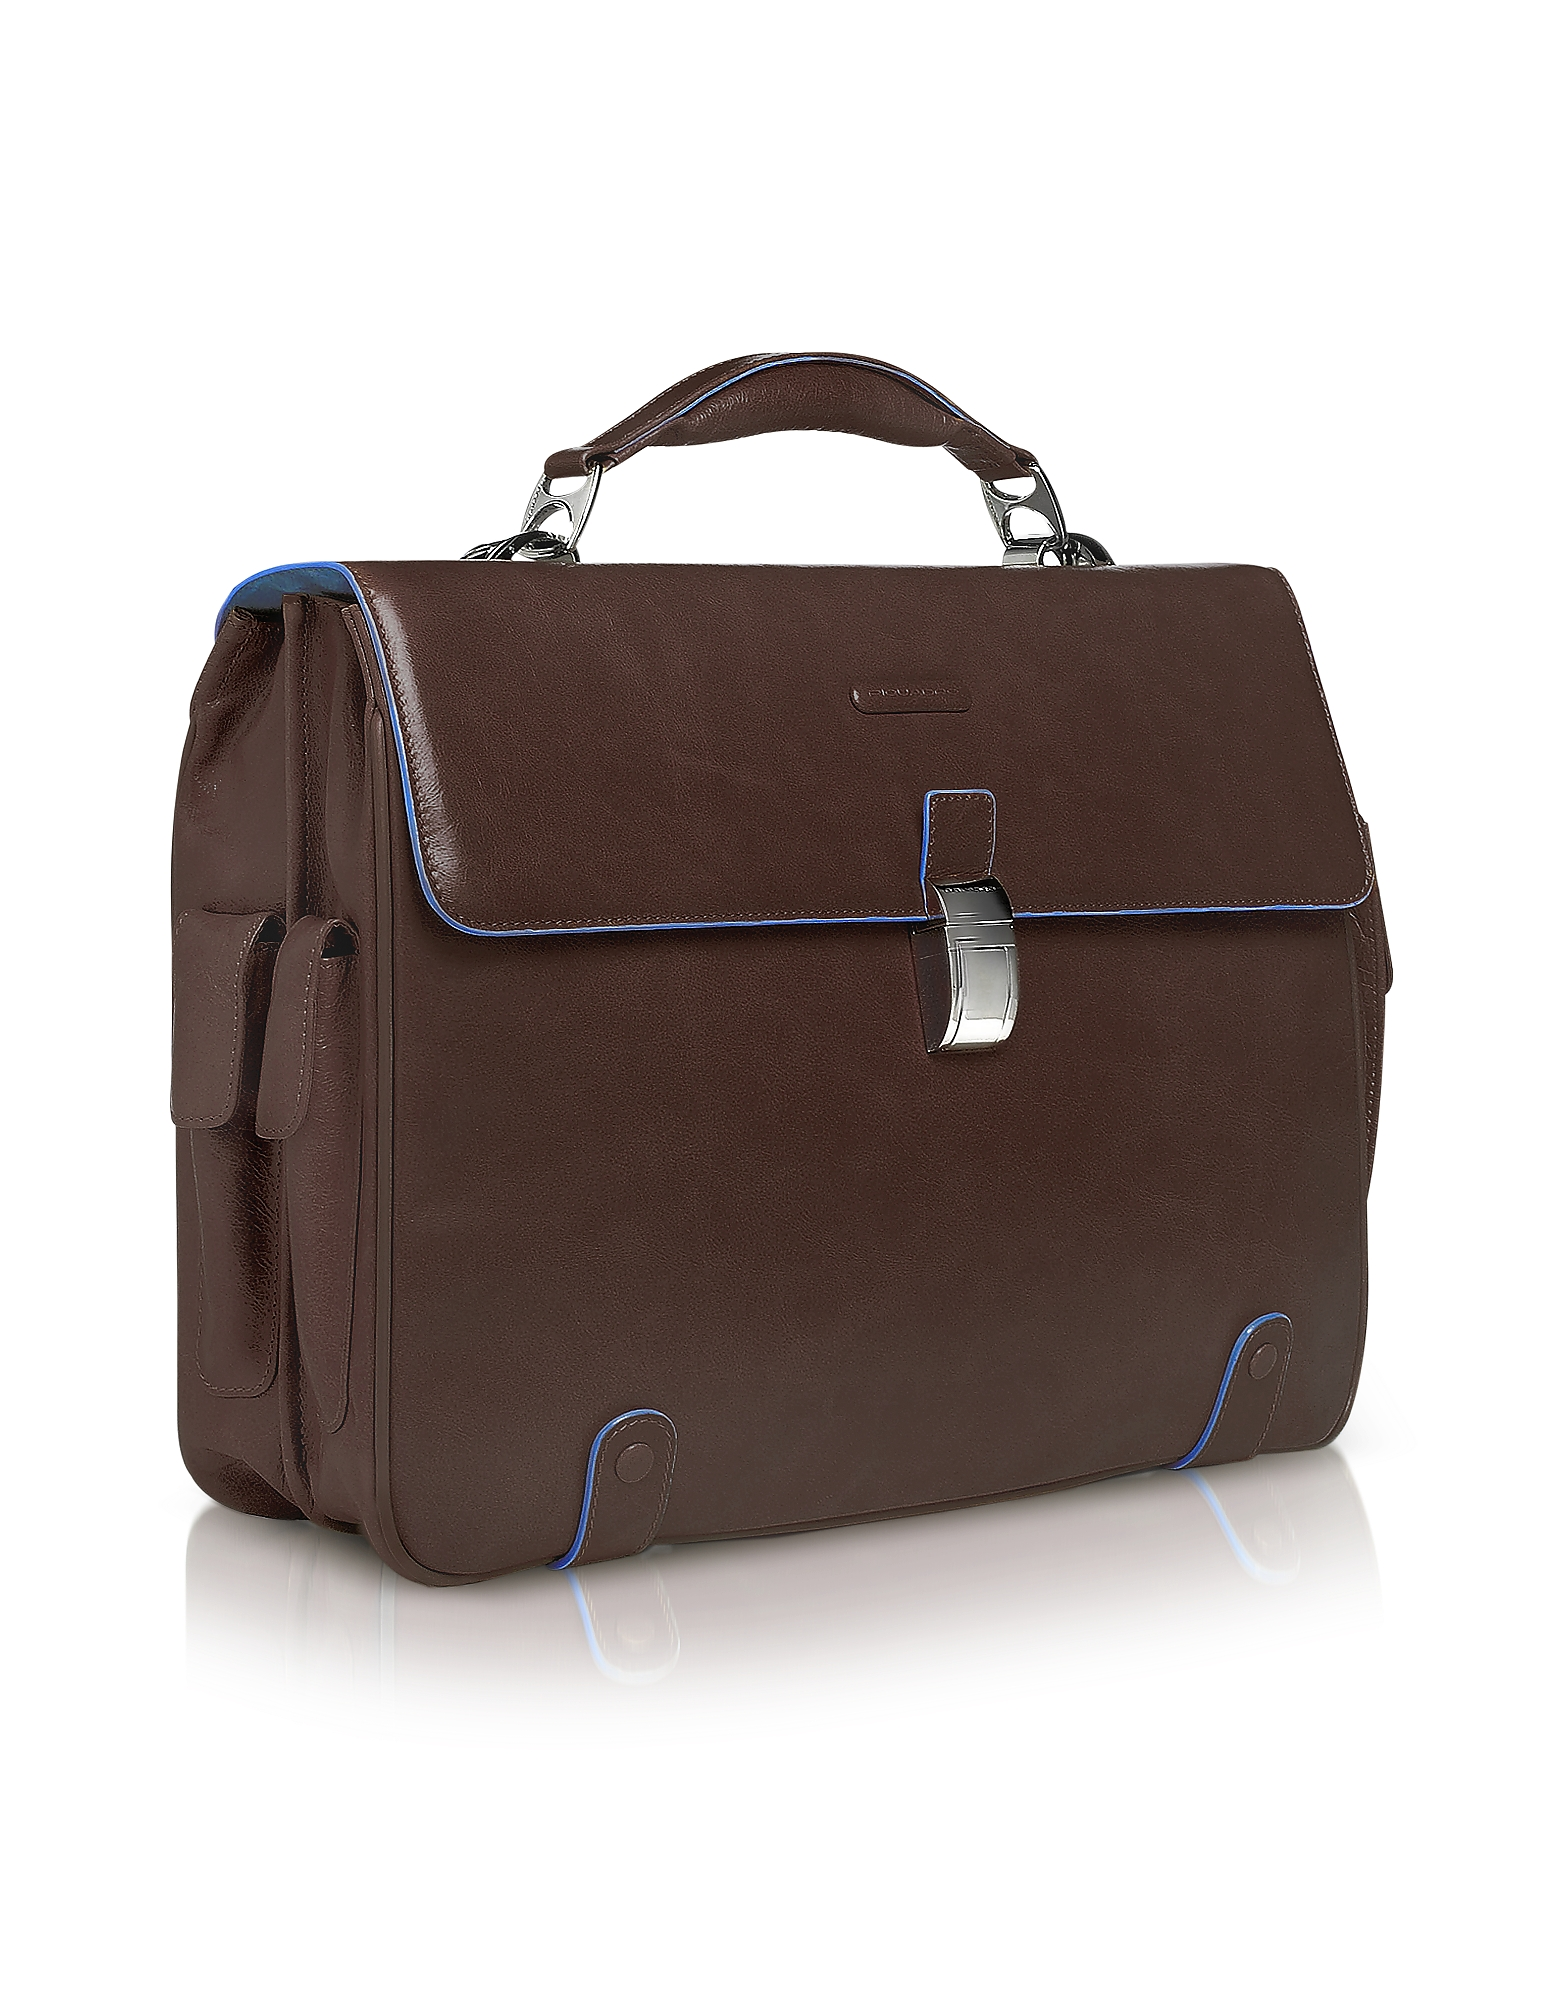 Piquadro Briefcases, Blue Square - Leather 15